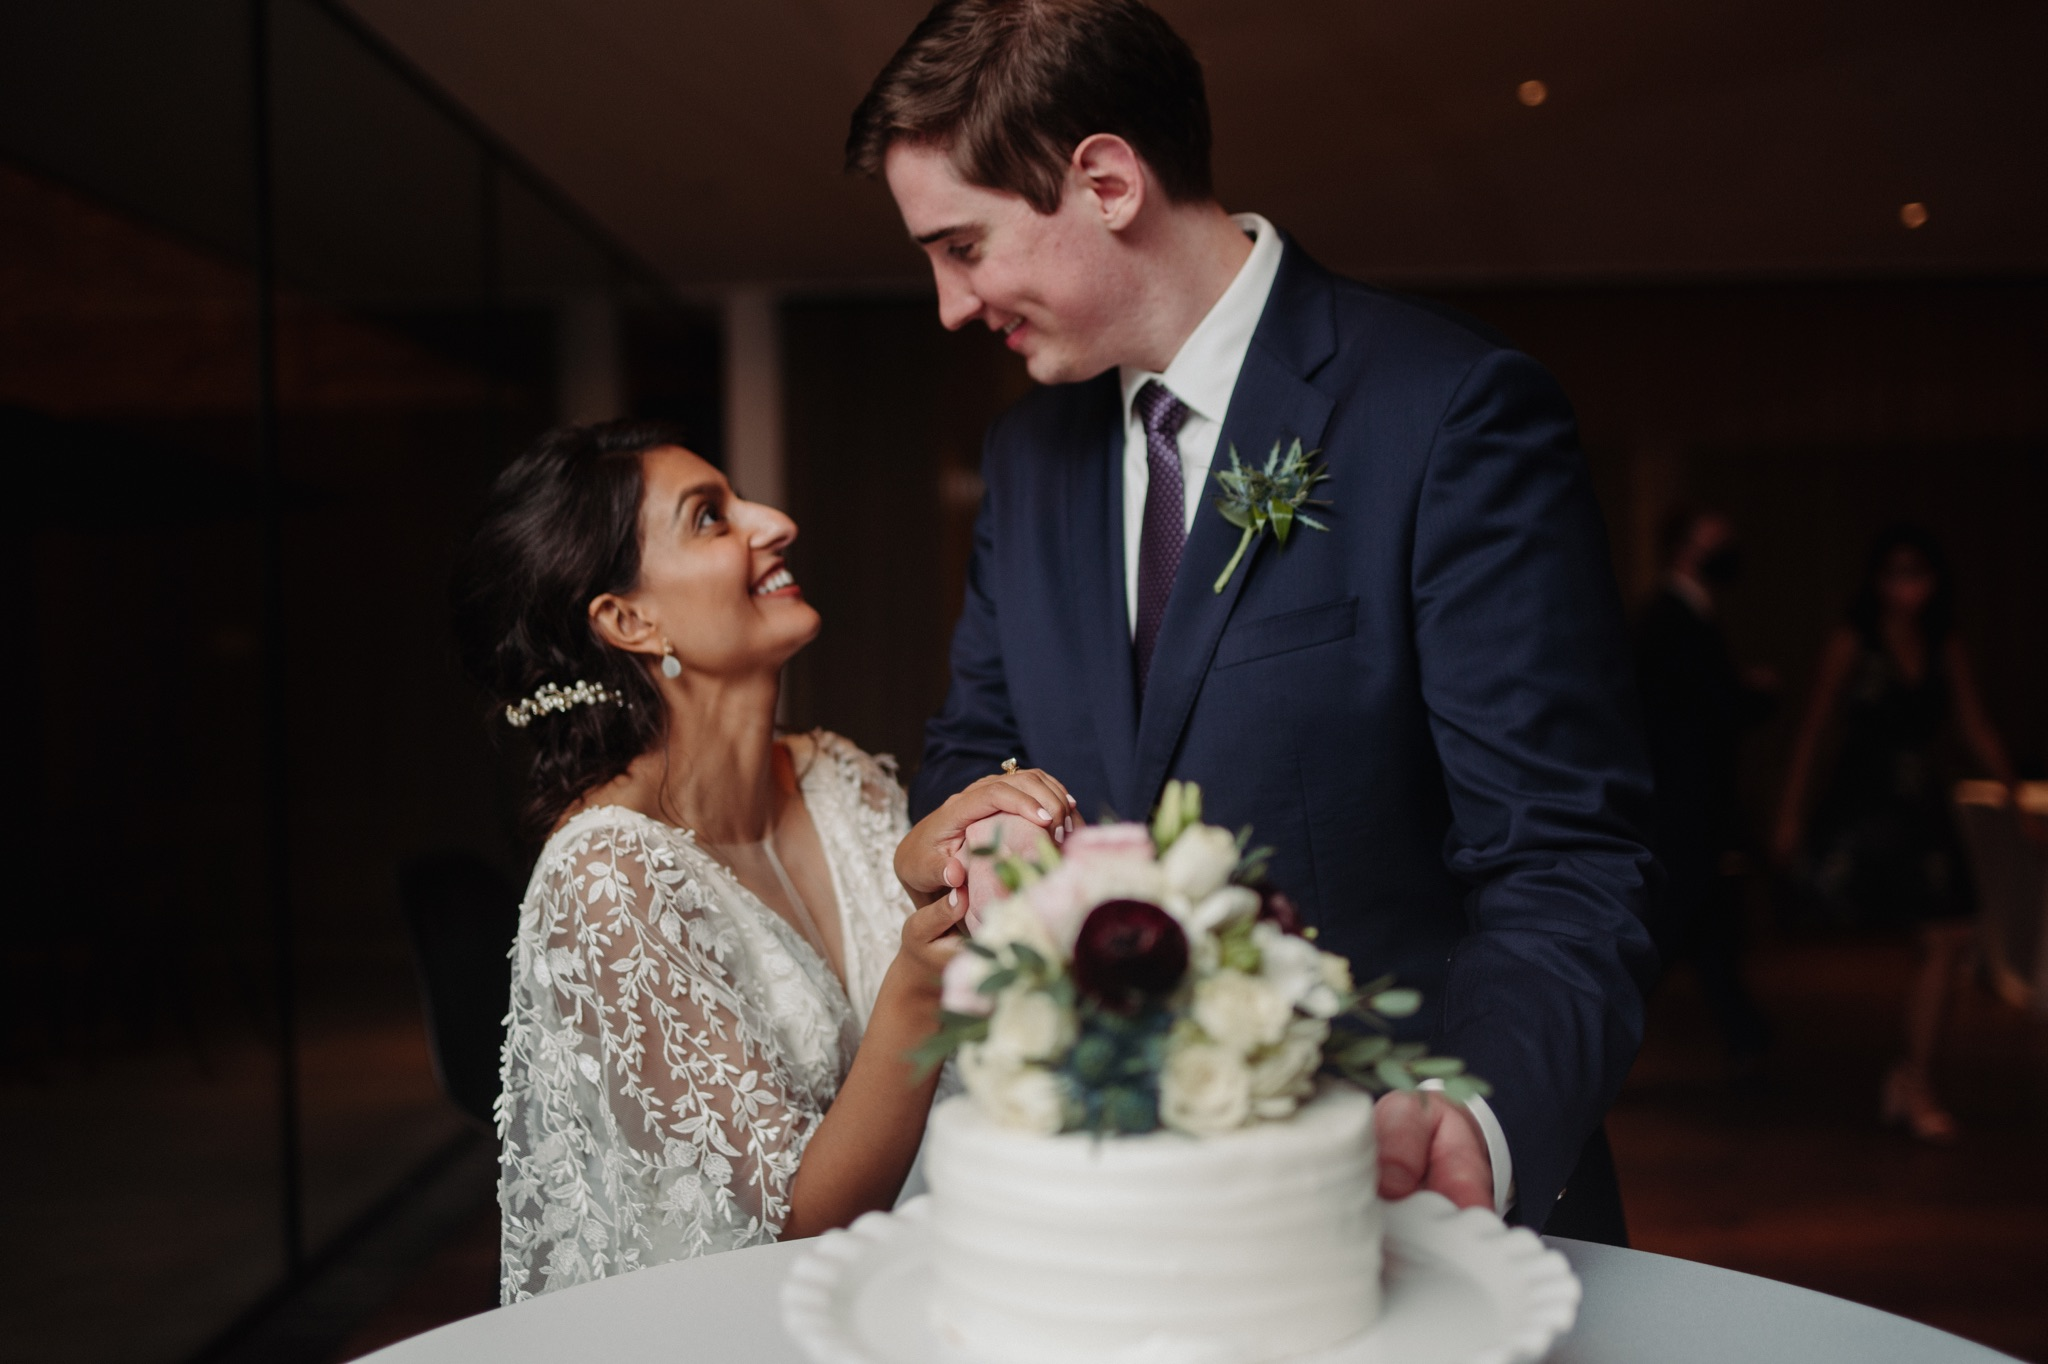 bride and groom standing behind a cake on a table looking at each other walker art center wedding